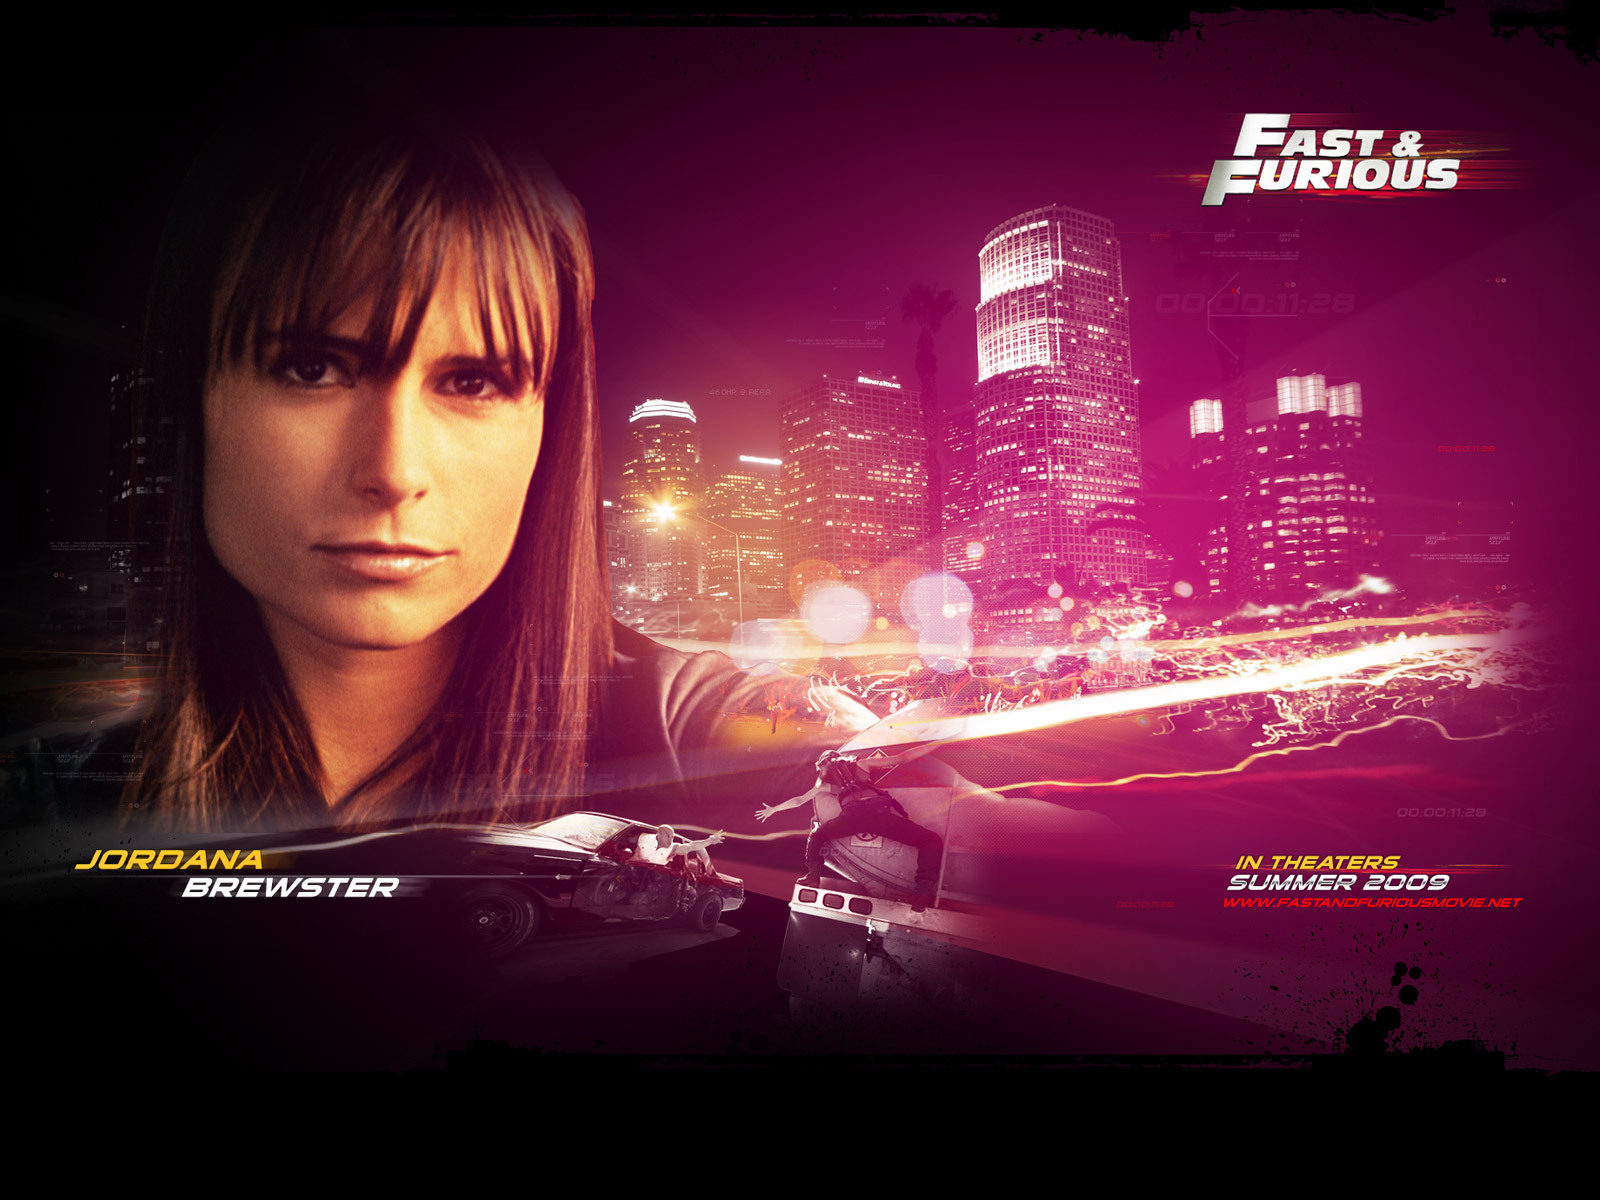 wallpaper HD jordana brewster fast and furious 7